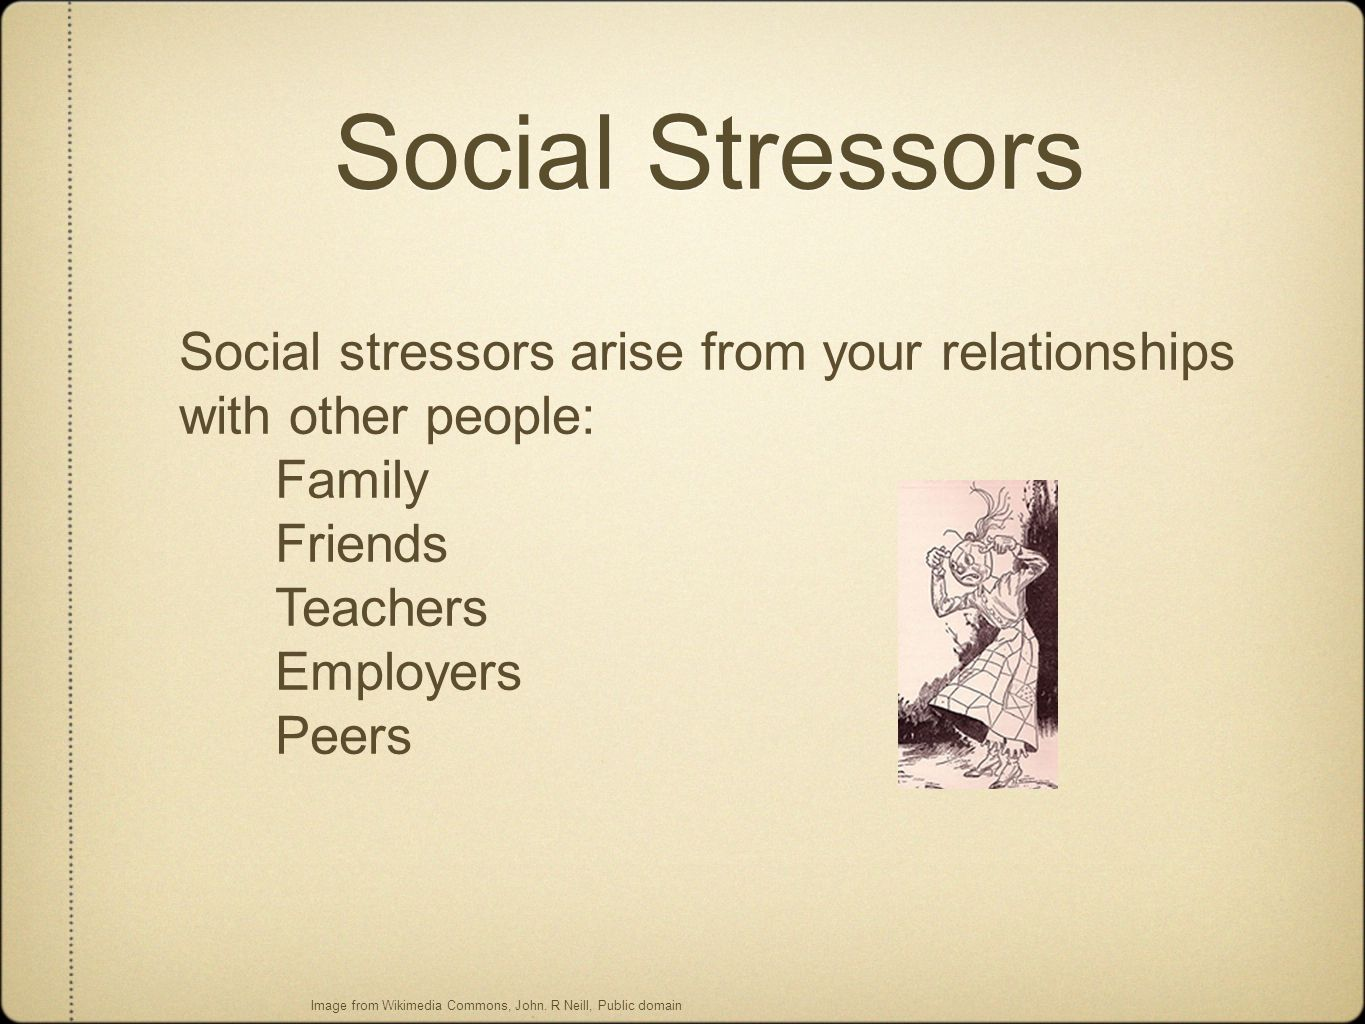 Social Stressors Social stressors arise from your relationships with other people: Family Friends Teachers Employers Peers Image from Wikimedia Common